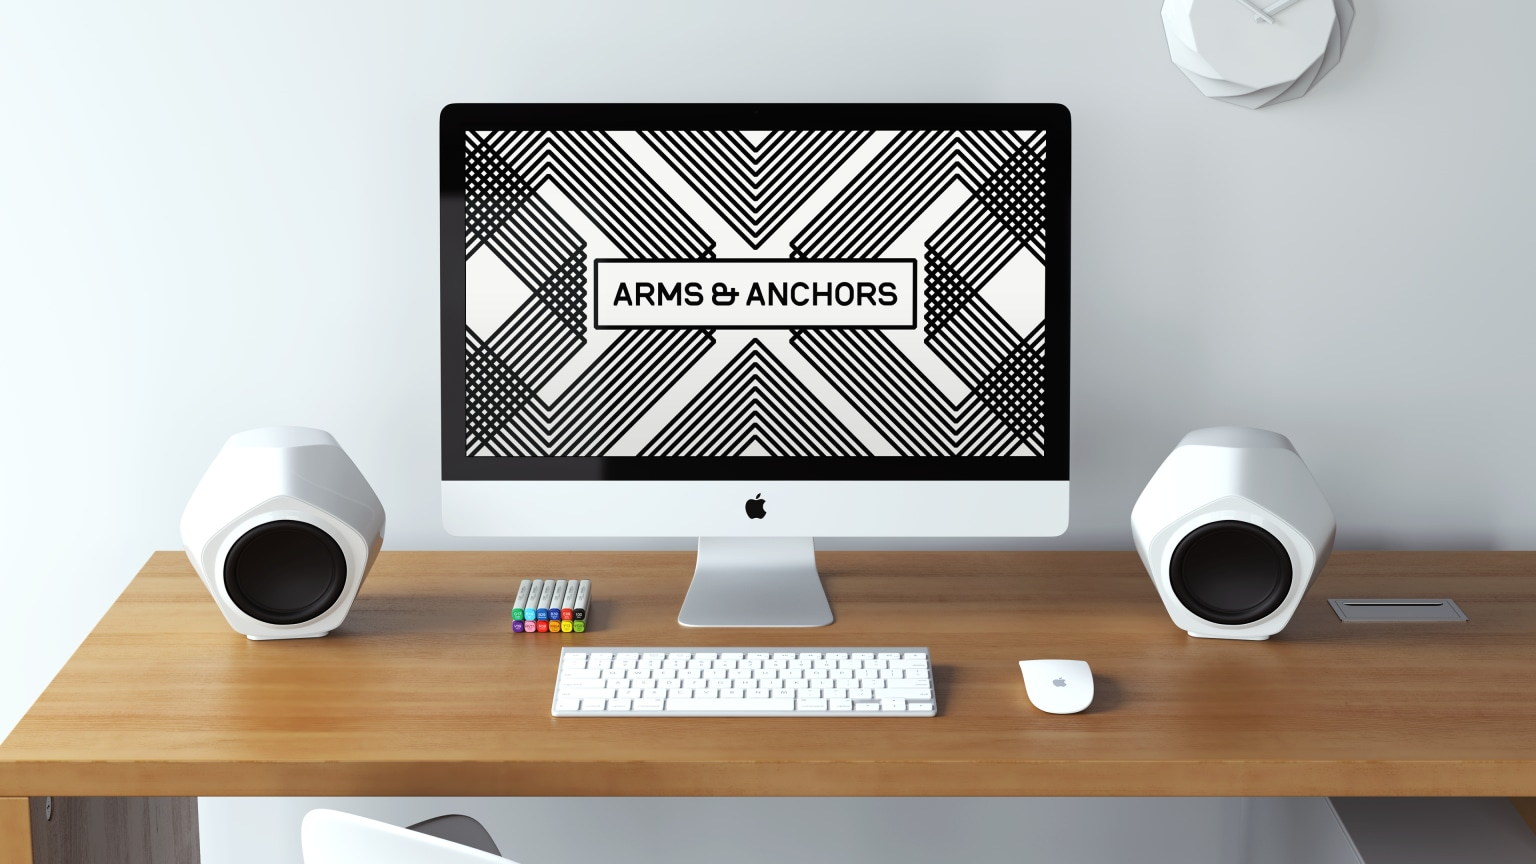 Arms & Anchors Identity